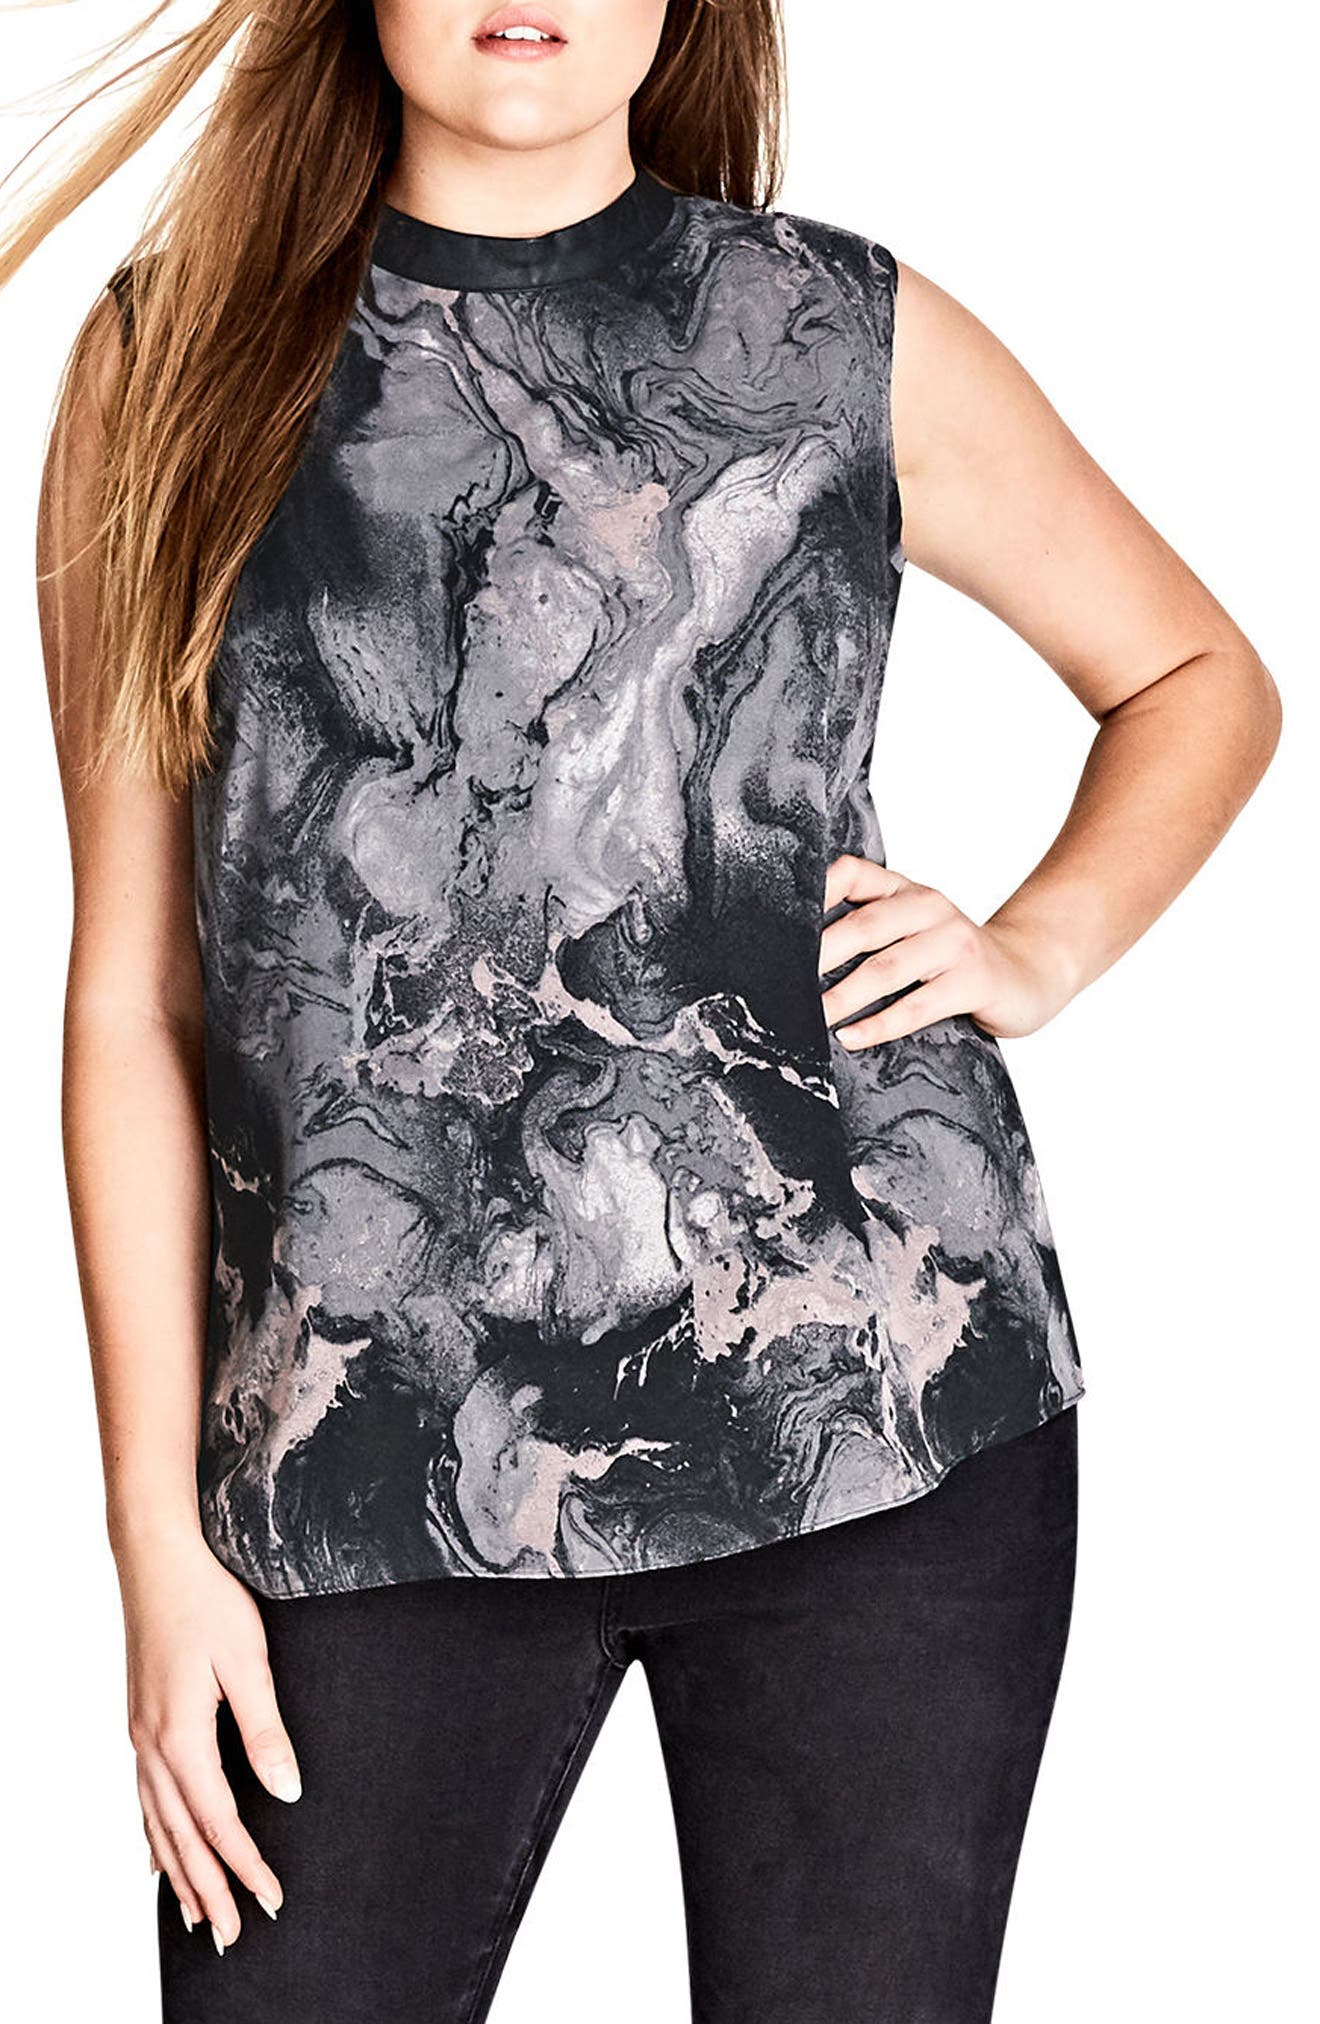 Alternate Image 1 Selected - City Chic Marble Print Top (Plus Size)